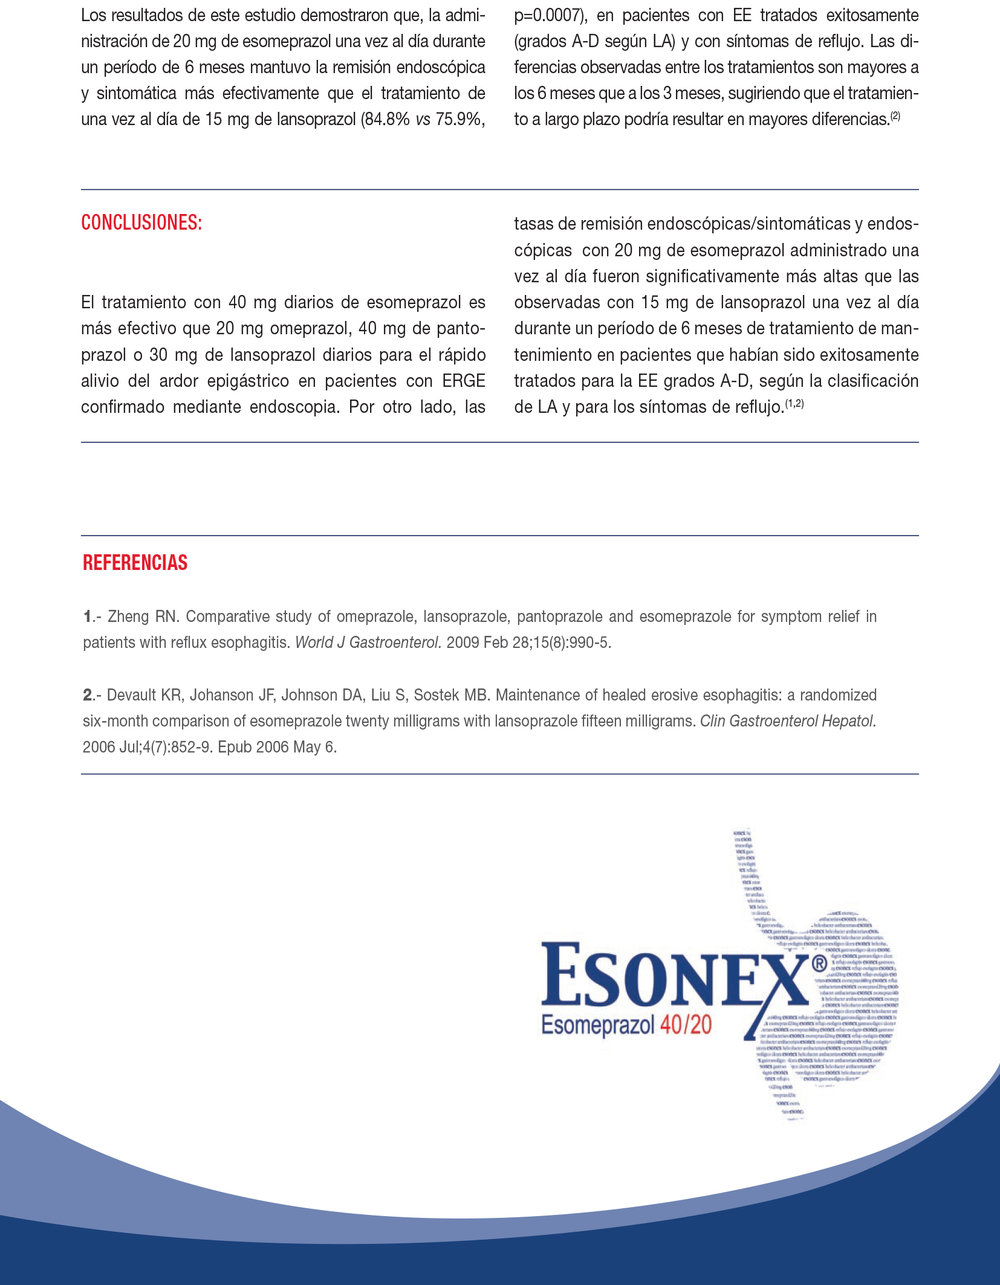 Esonex_News1 final_unlocked-4.jpg